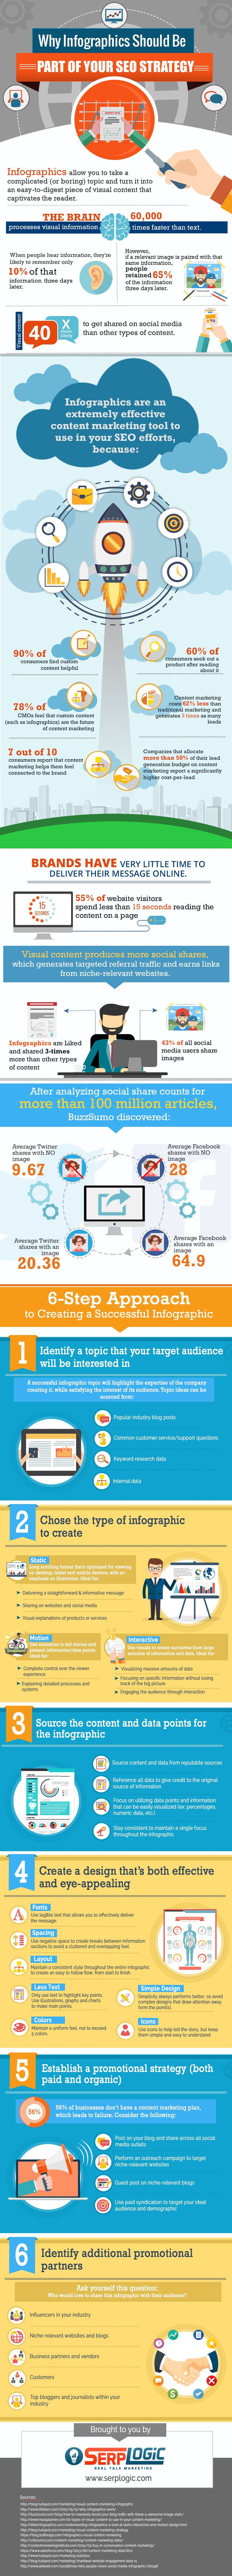 What could be better than an #infographic to talk about their impact on your #SEO strategy? #marketing